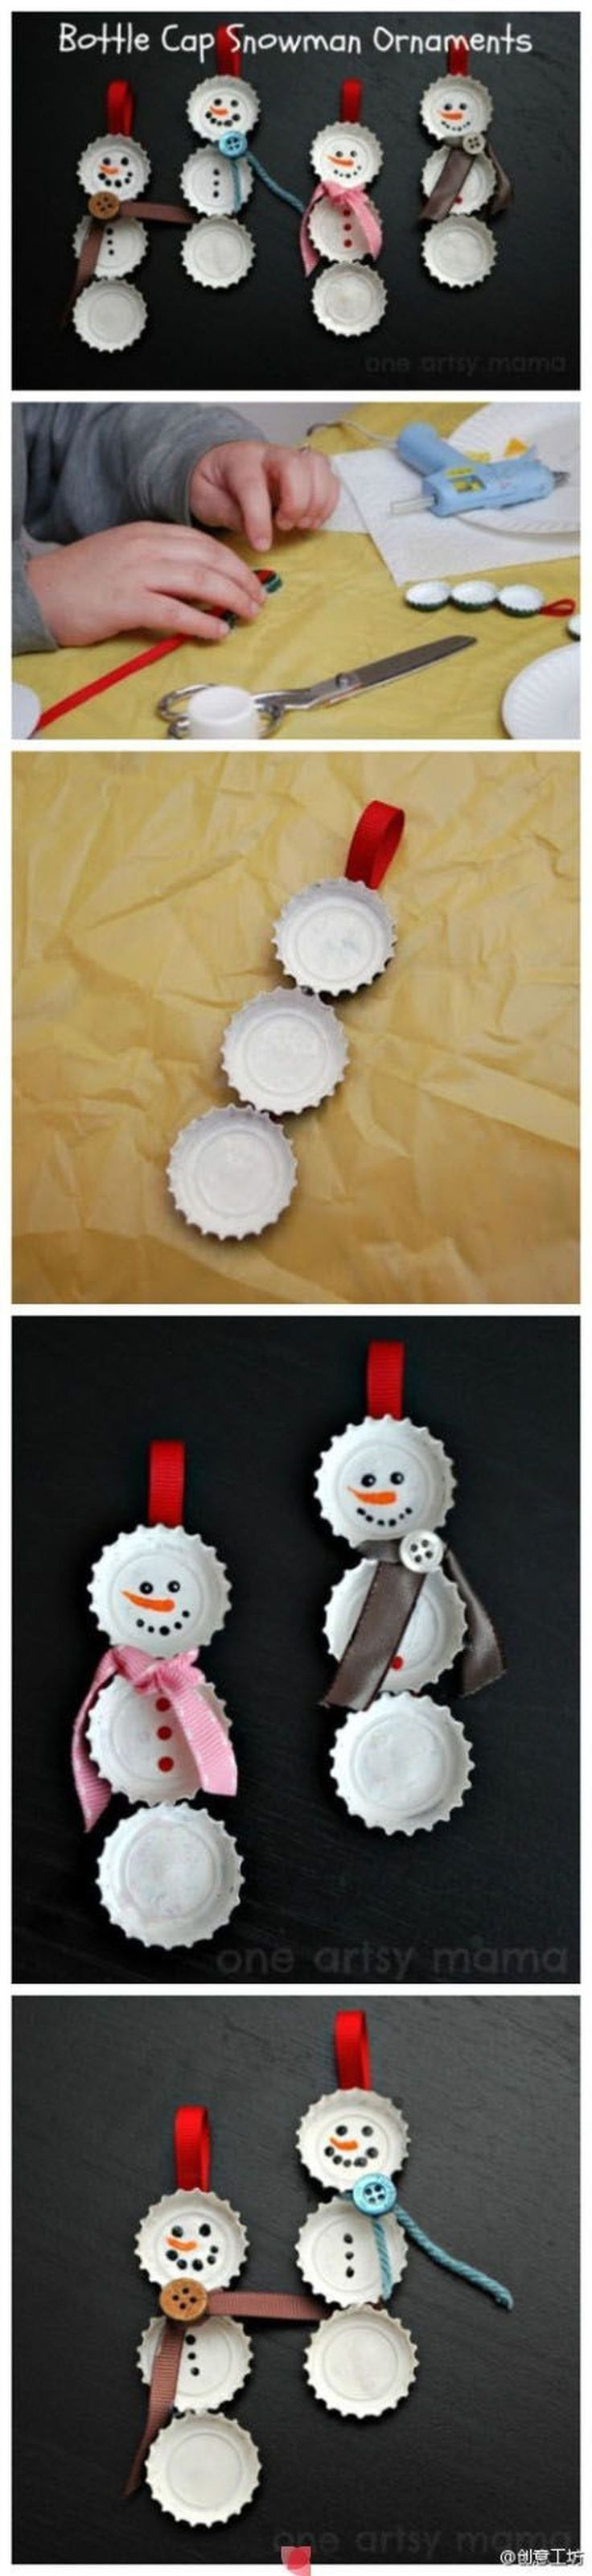 Let's create a new keepsake with these DIY ornament ideas. Prepare plastic old-fashioned light bulb ornaments, white glitter, mini bottle brush trees, red and white striped baker's twine and a hot glue gun to make a cute mini snow globe. Grab your photos, cut them into circles and apply to wood slices to make your favorite holiday memories last a lifetime with this personalized ornaments. Make a cute Christmas star ornaments with festive yarn and pretty cardstock.